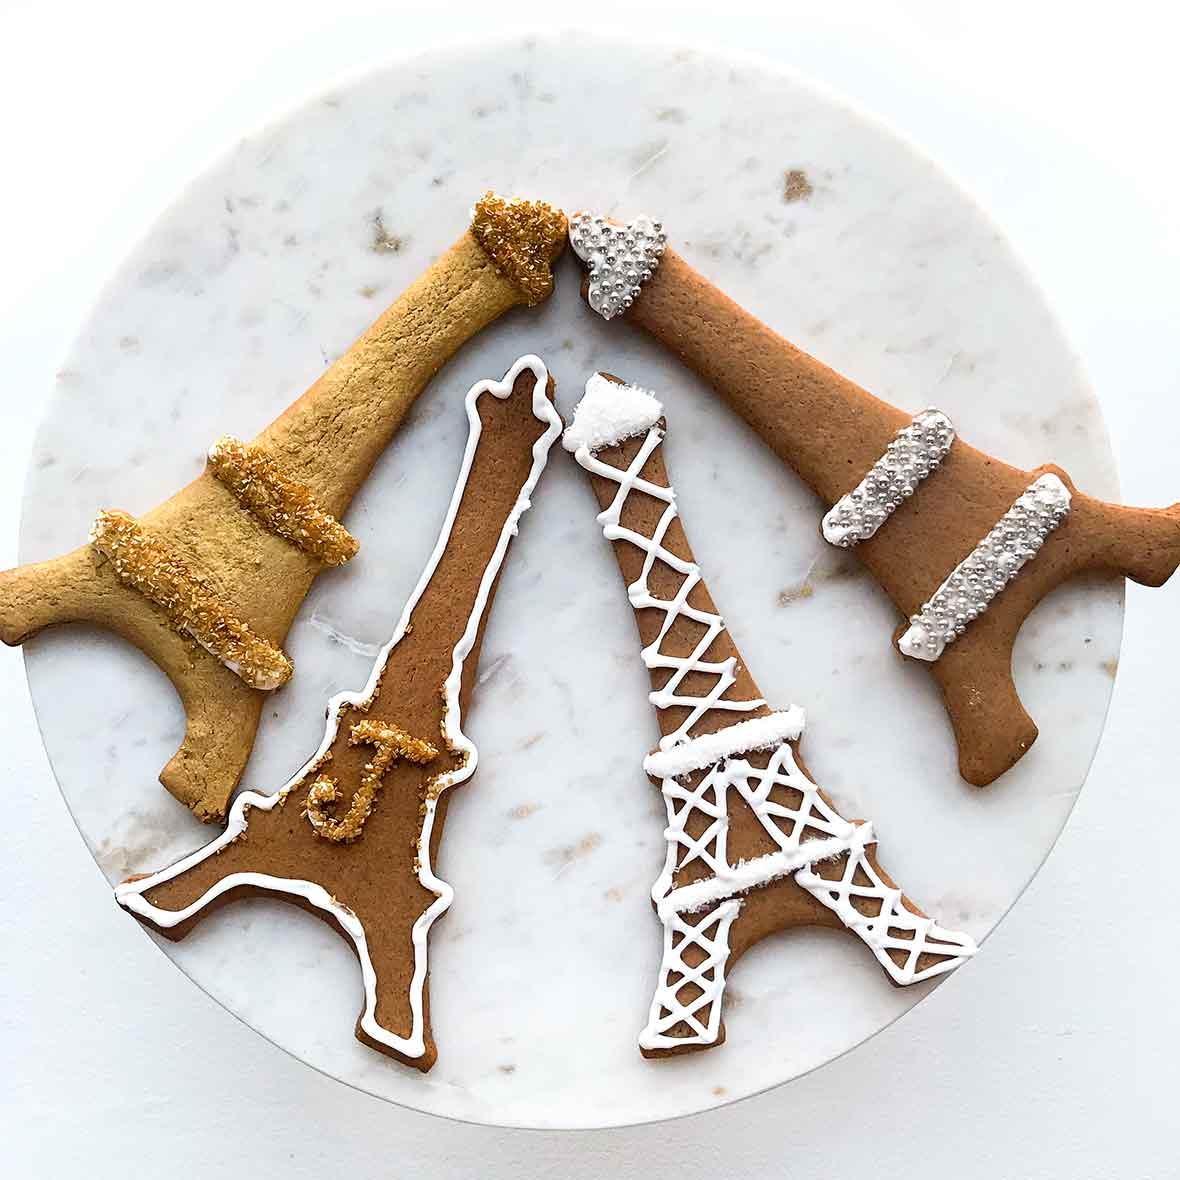 Four Swedish black pepper cookies called pepperkakor cut into Eiffel Tower shapes and decorated